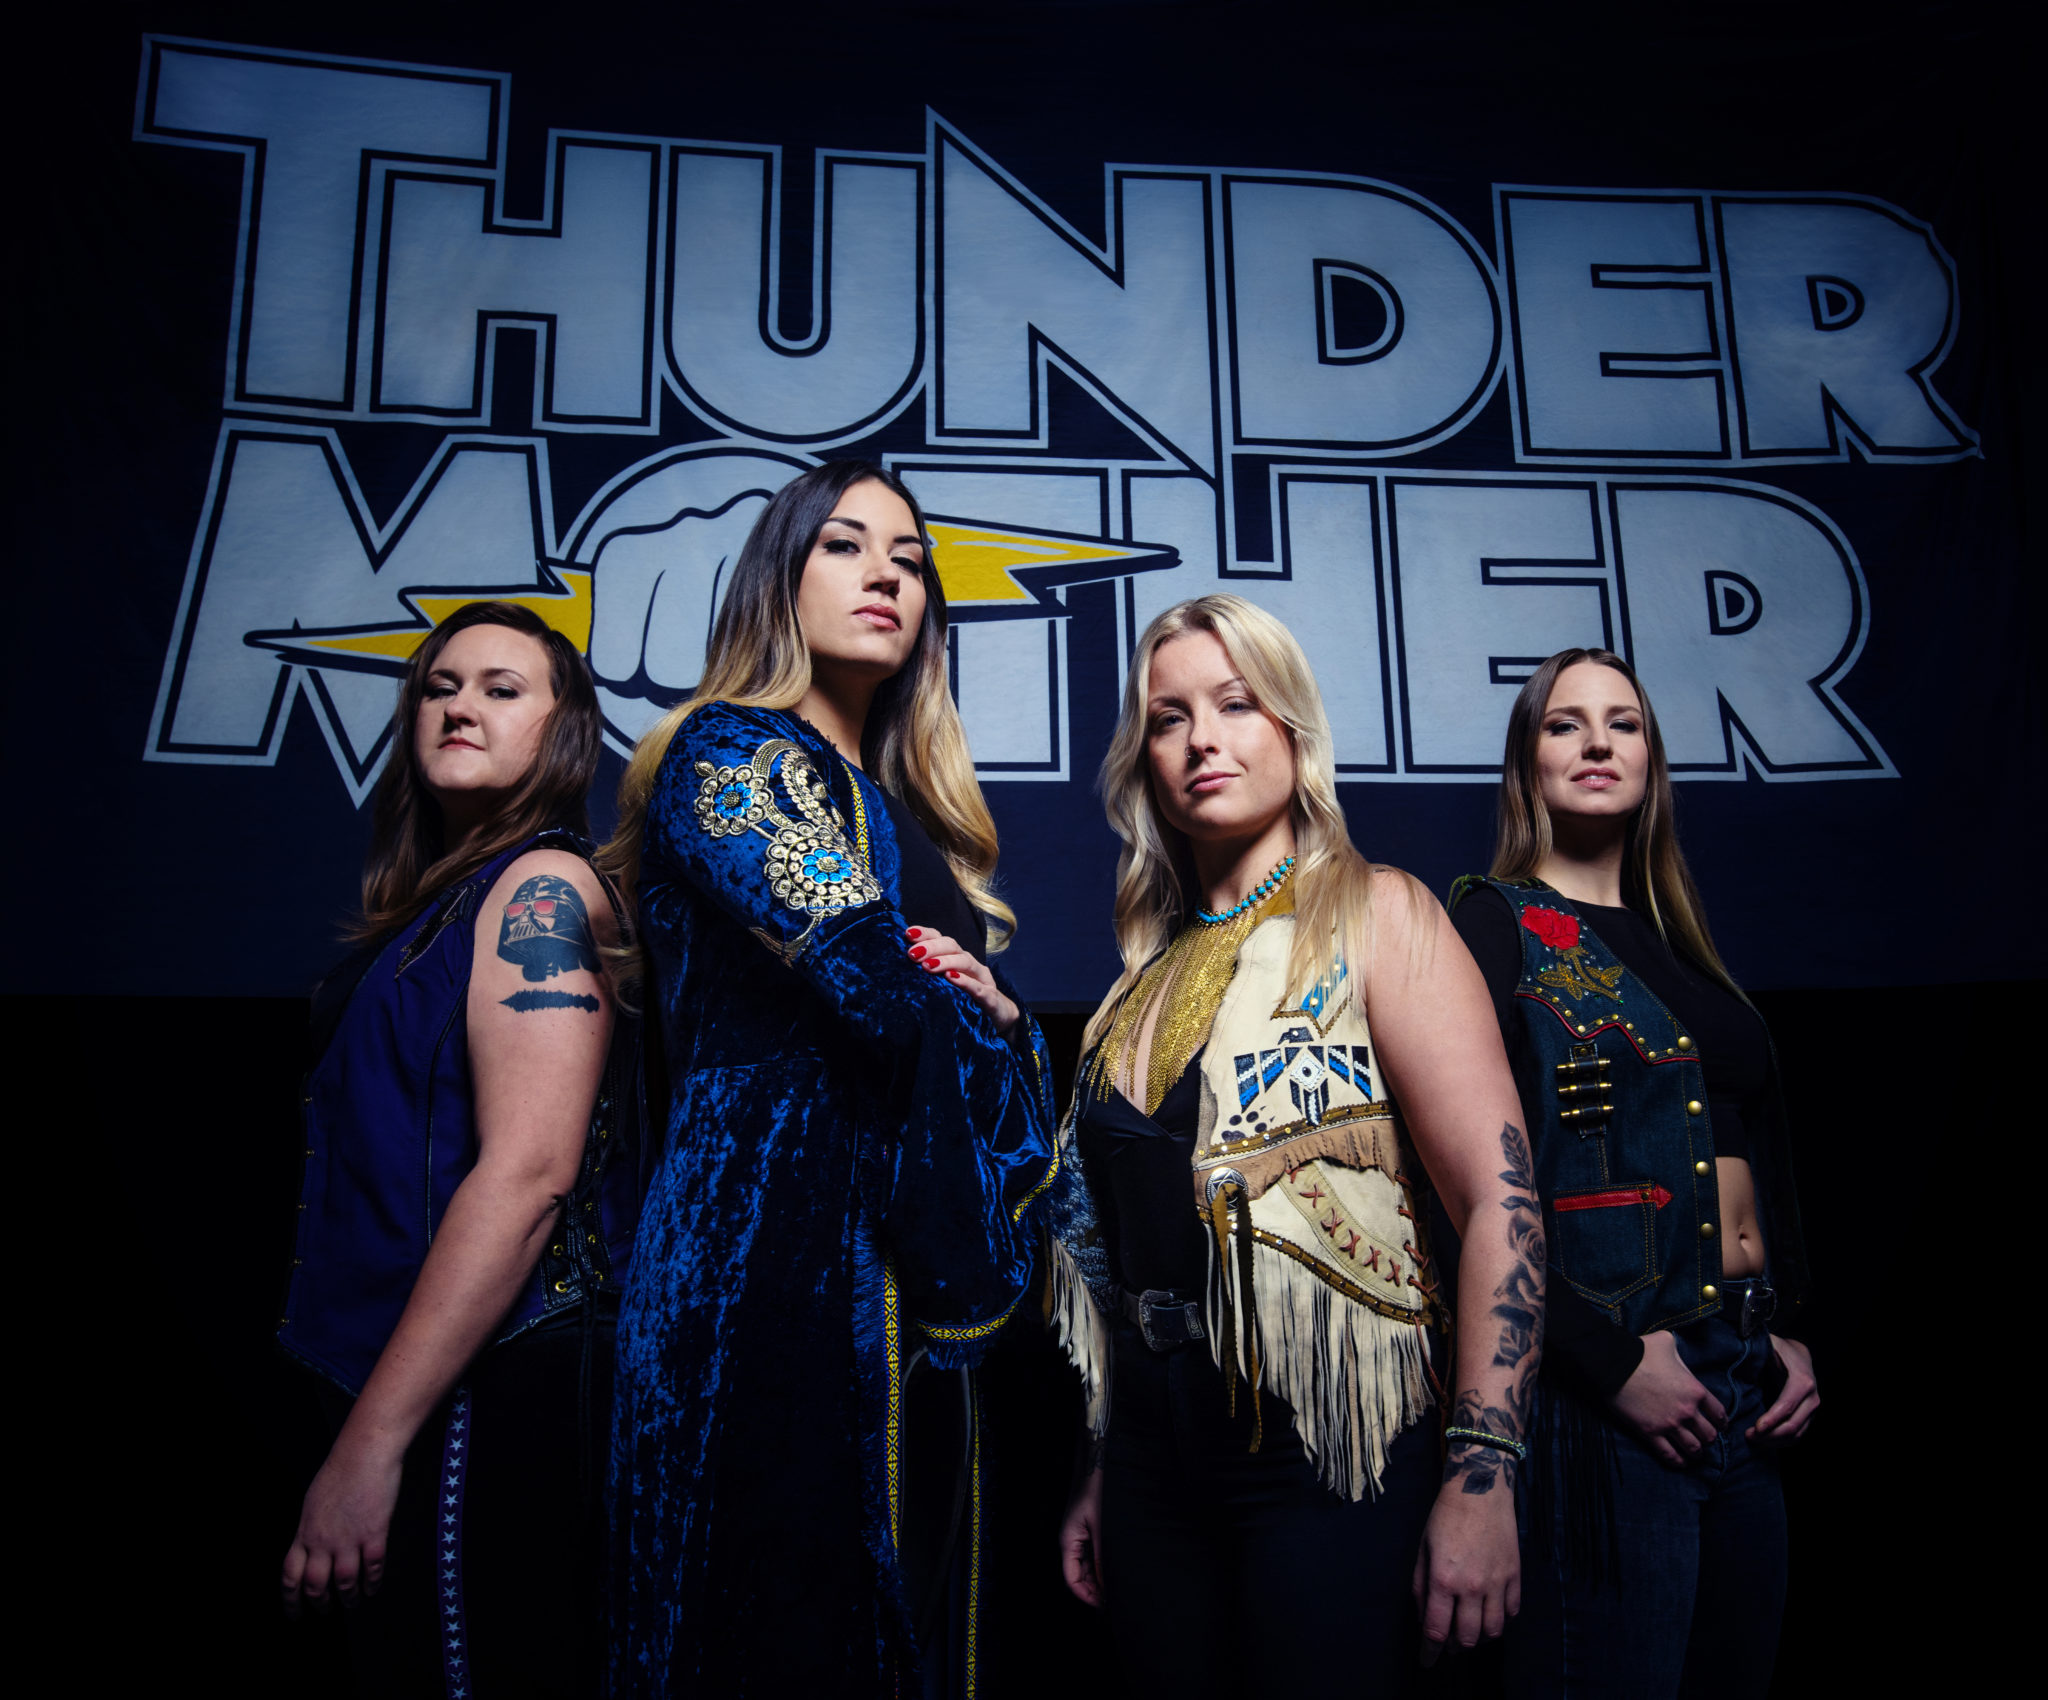 Thundermother (S) + Special guest  12-11-21